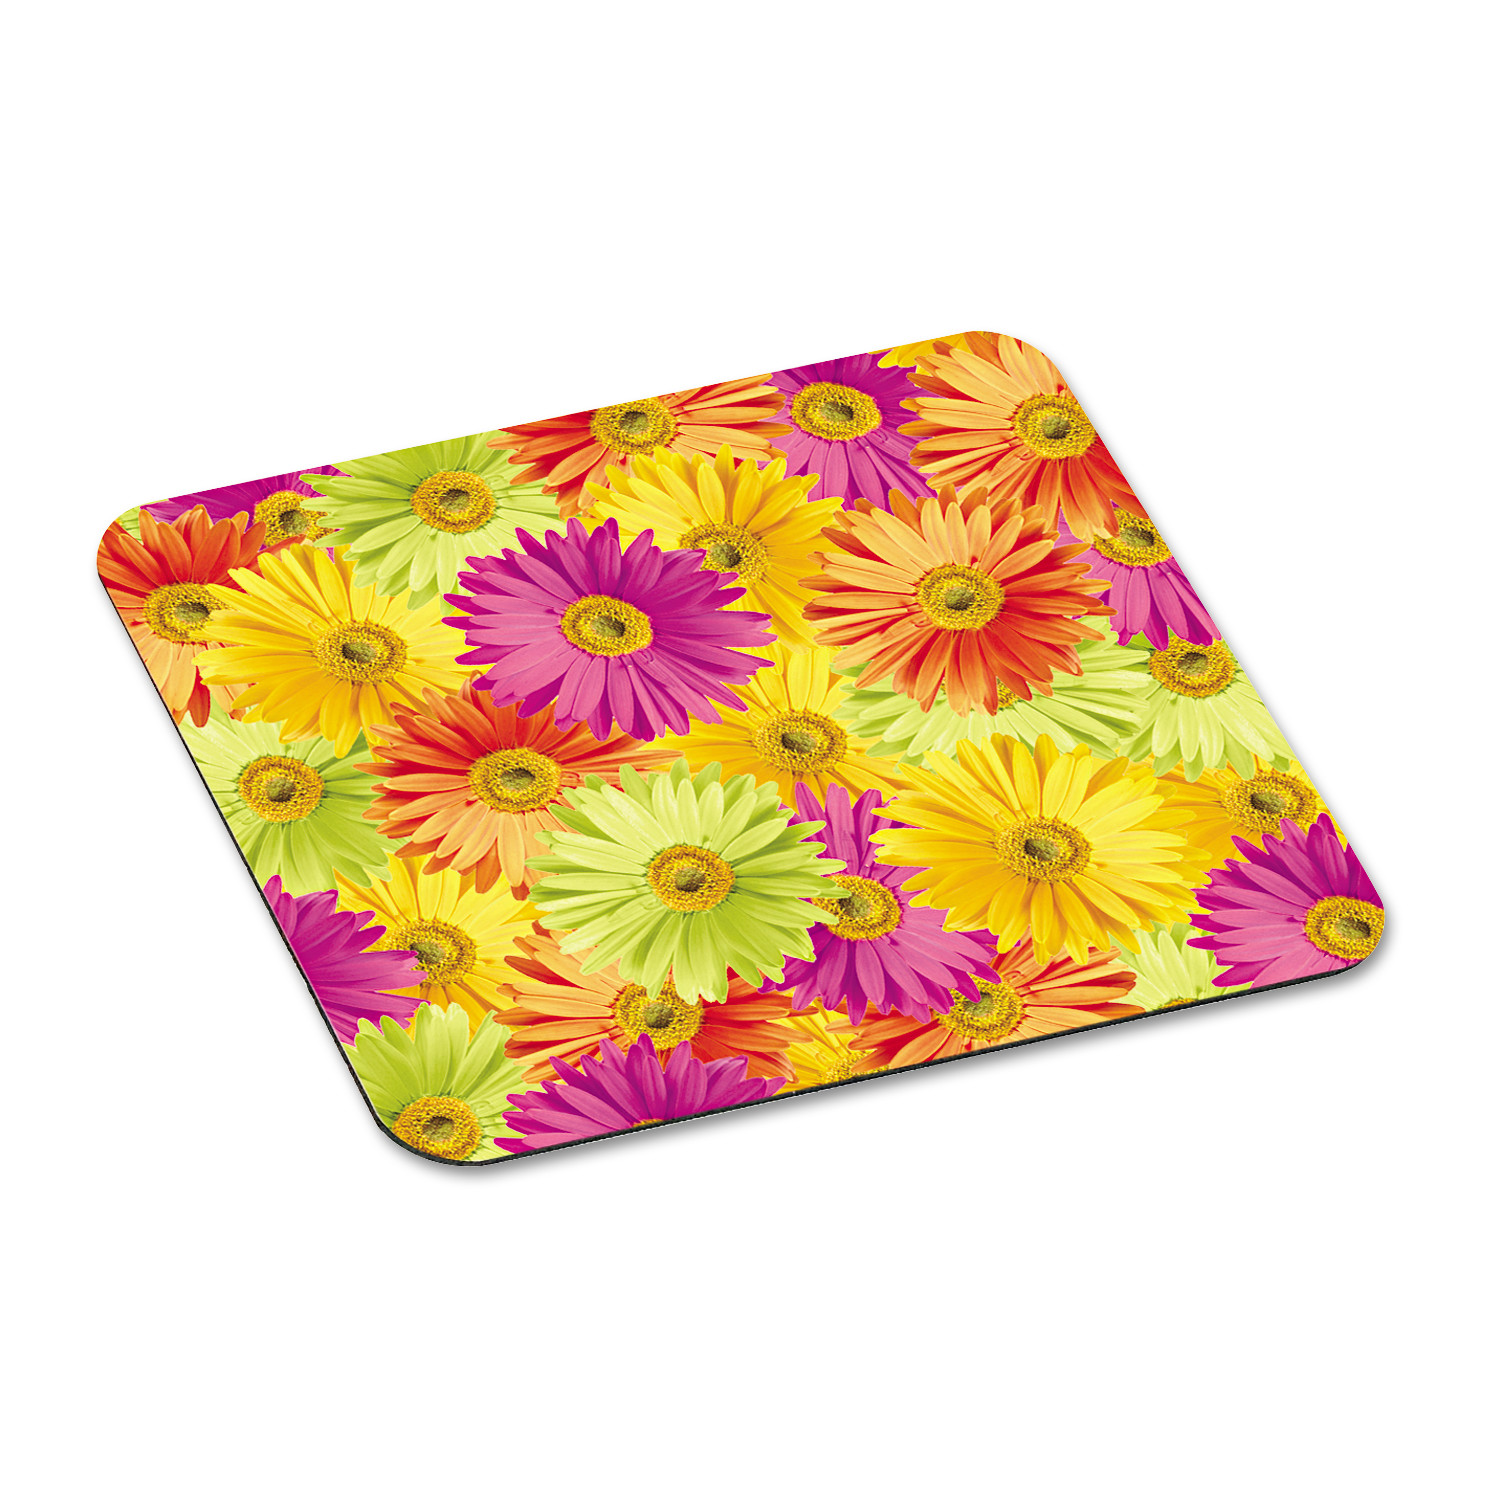 """3M Mouse Pad with Precise Mousing Surface, 9"""" x 8"""" x 1 8\ by 3M/COMMERCIAL TAPE DIV."""